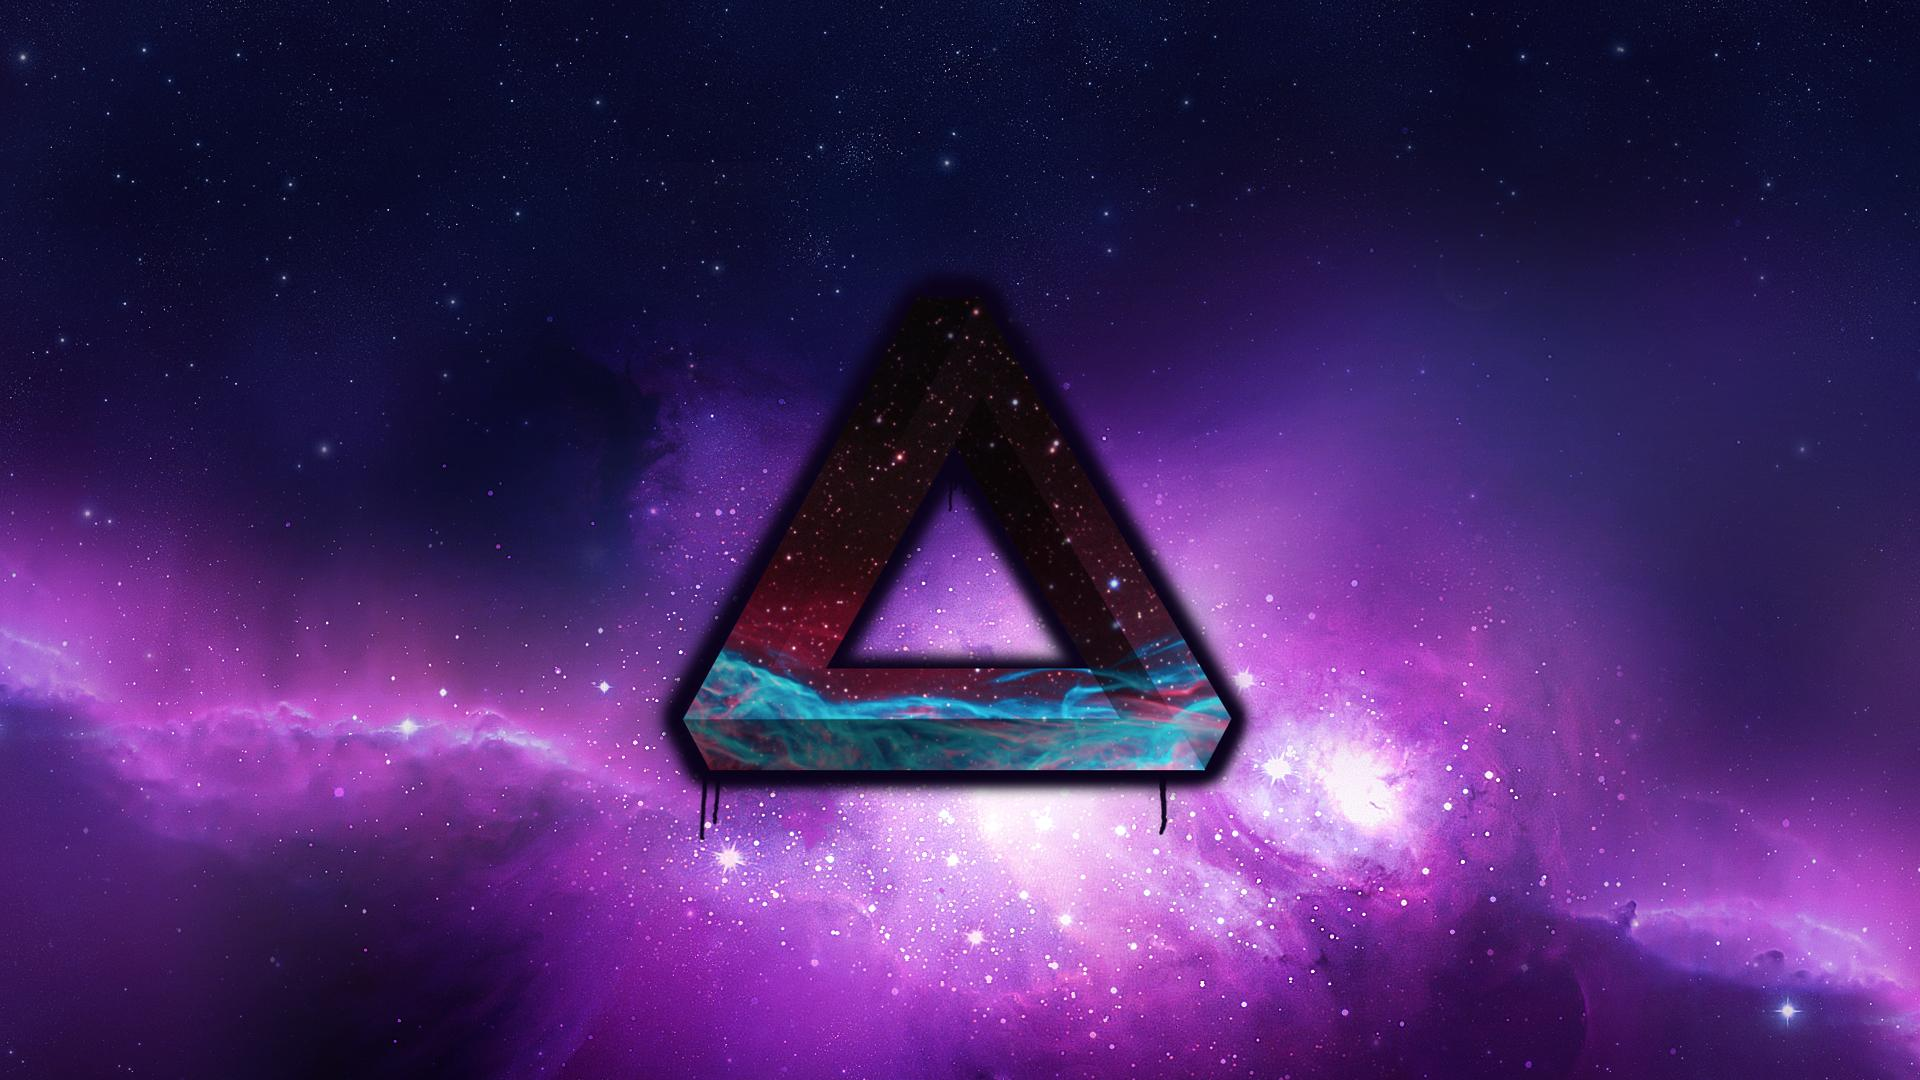 Penrose Triangle Wallpapers - Top Free Penrose Triangle ...